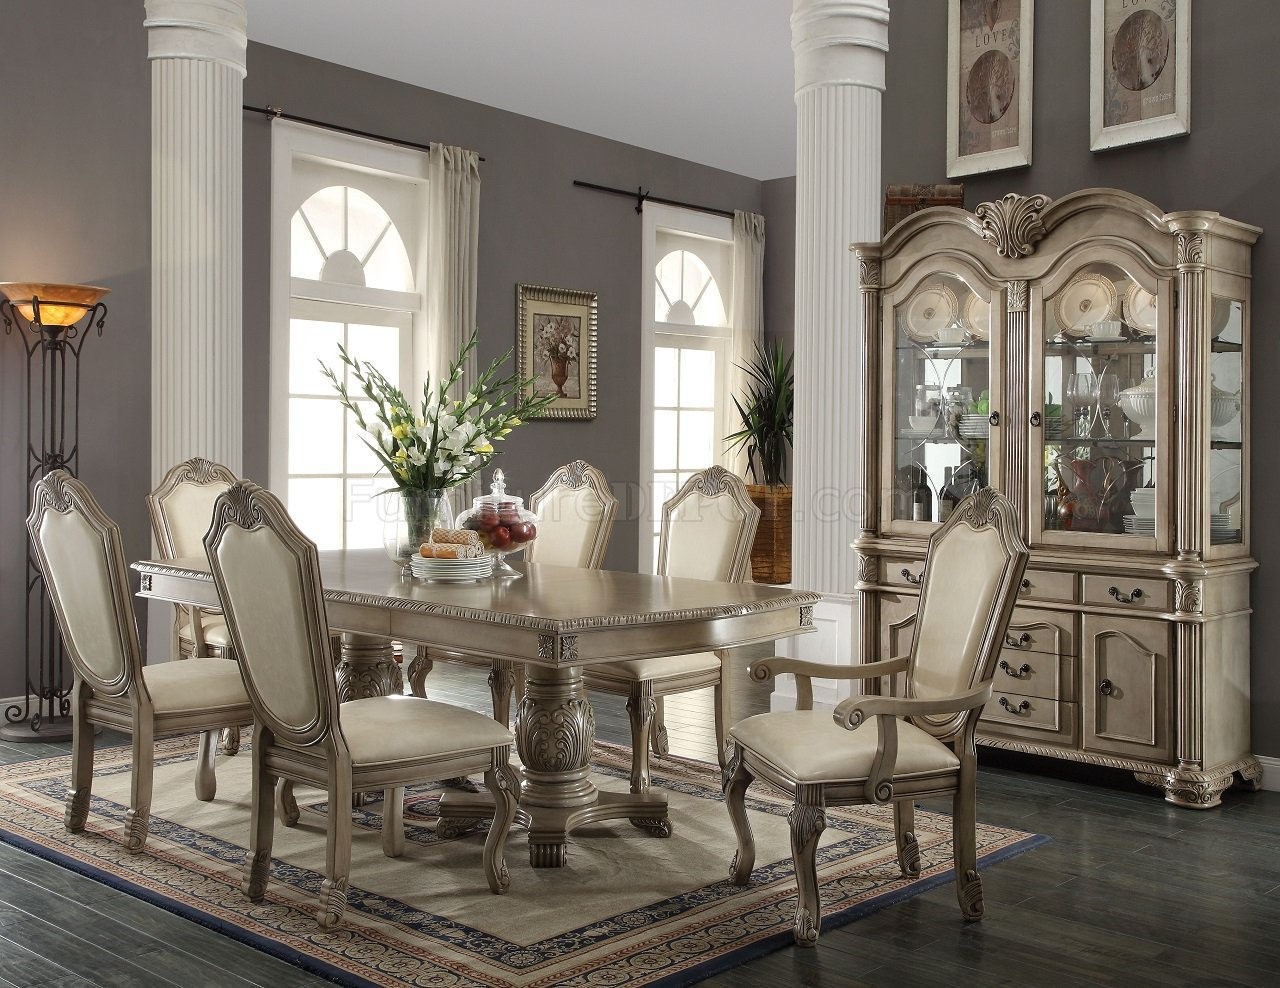 Modern formal dining room sets - Chateau De Ville 64065 Dining Table By Acme W Options